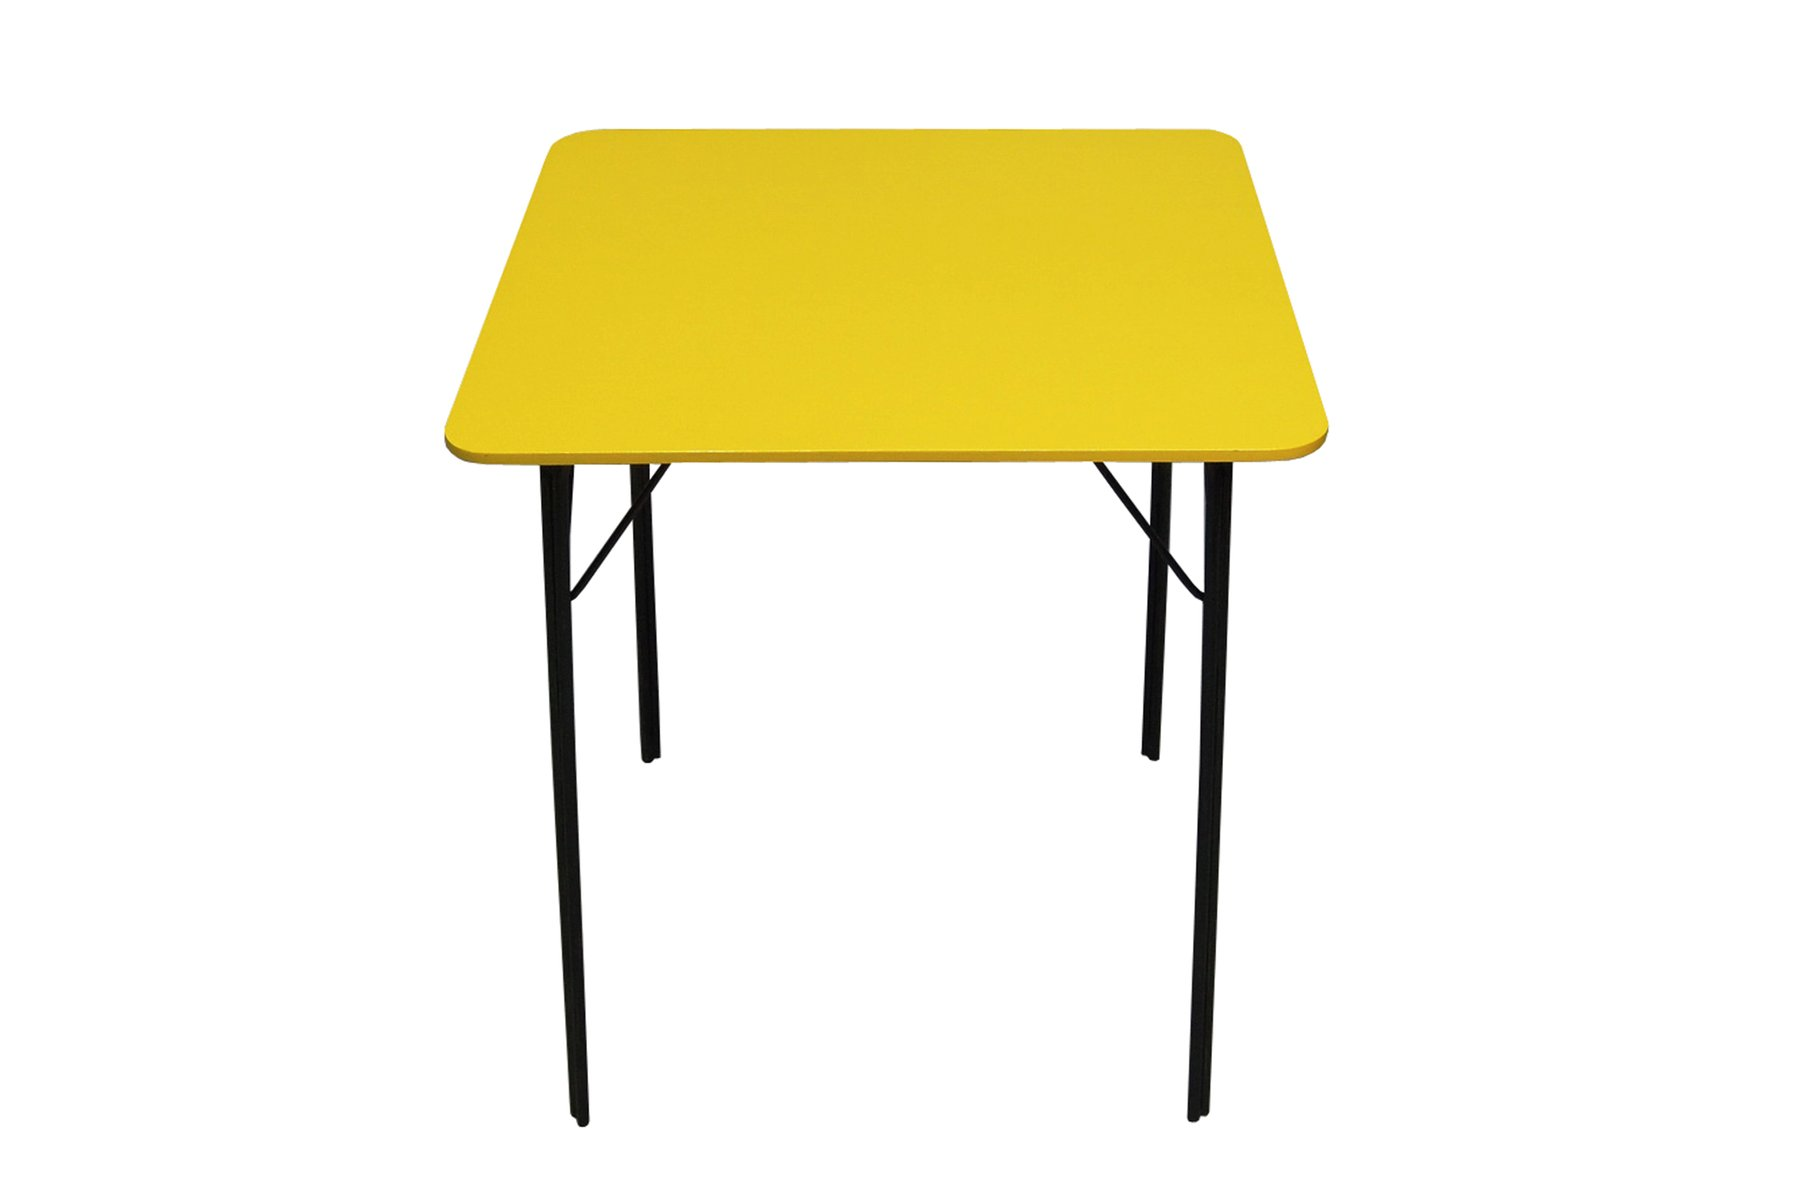 Vintage Yellow Dining Table for sale at Pamono : vintage yellow dining table 2 from www.pamono.com size 1800 x 1200 jpeg 32kB